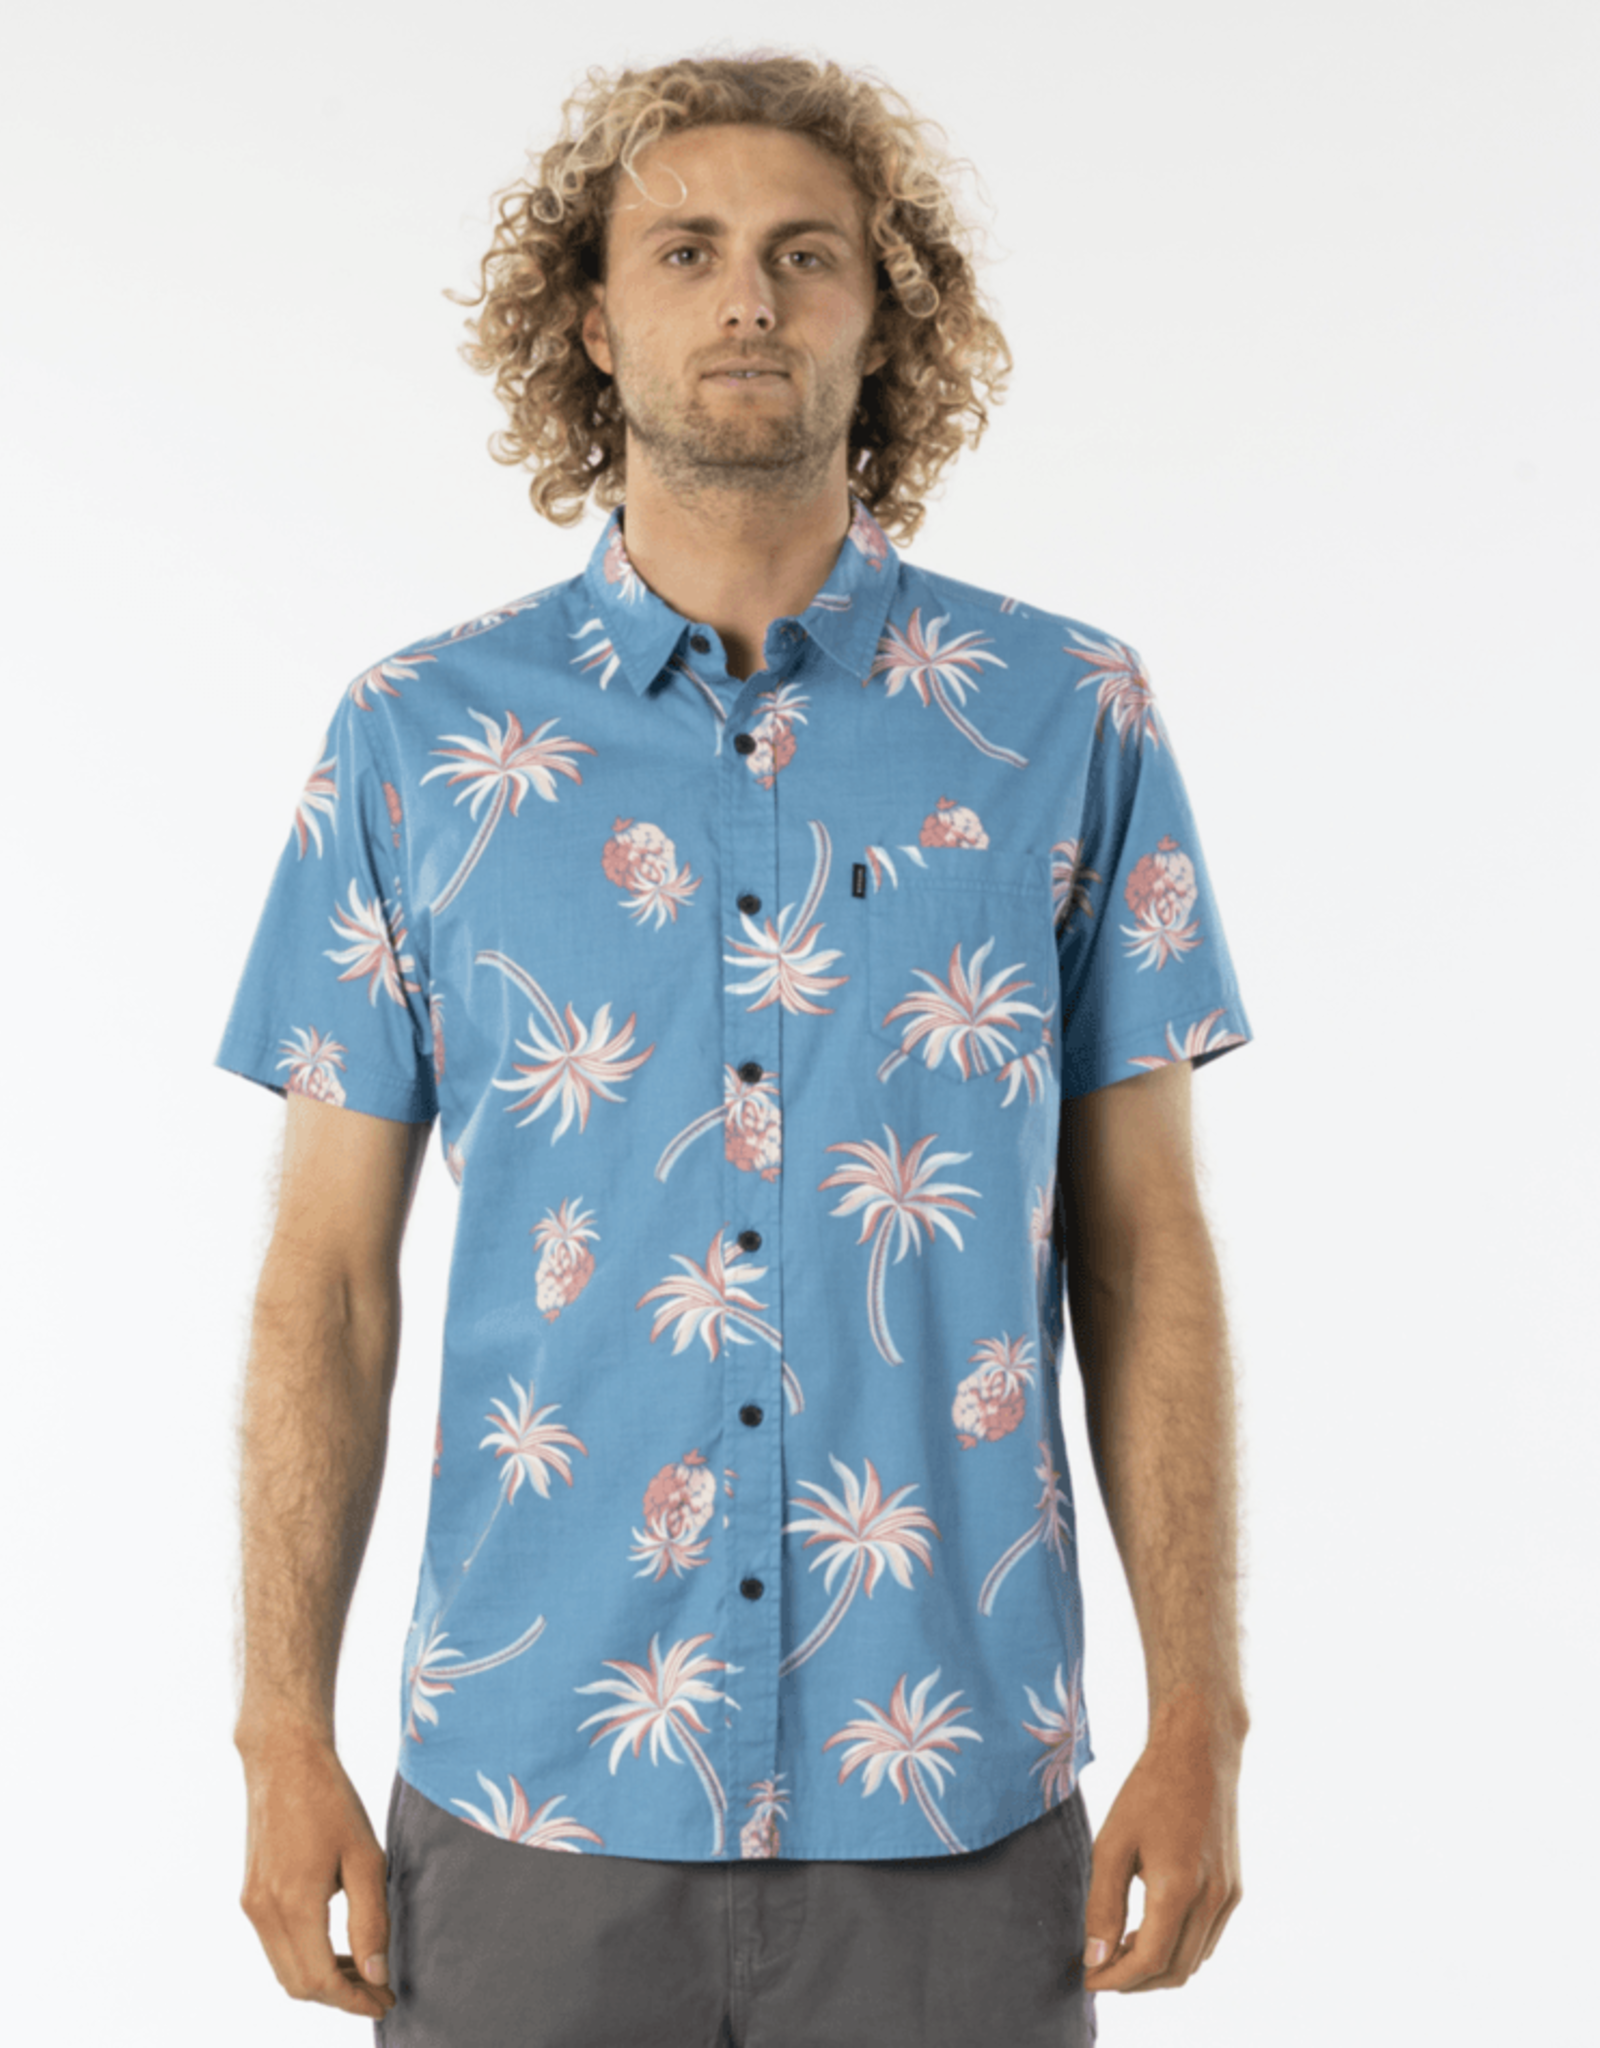 RIPCURL OASIS PARTY S/S SHIRT